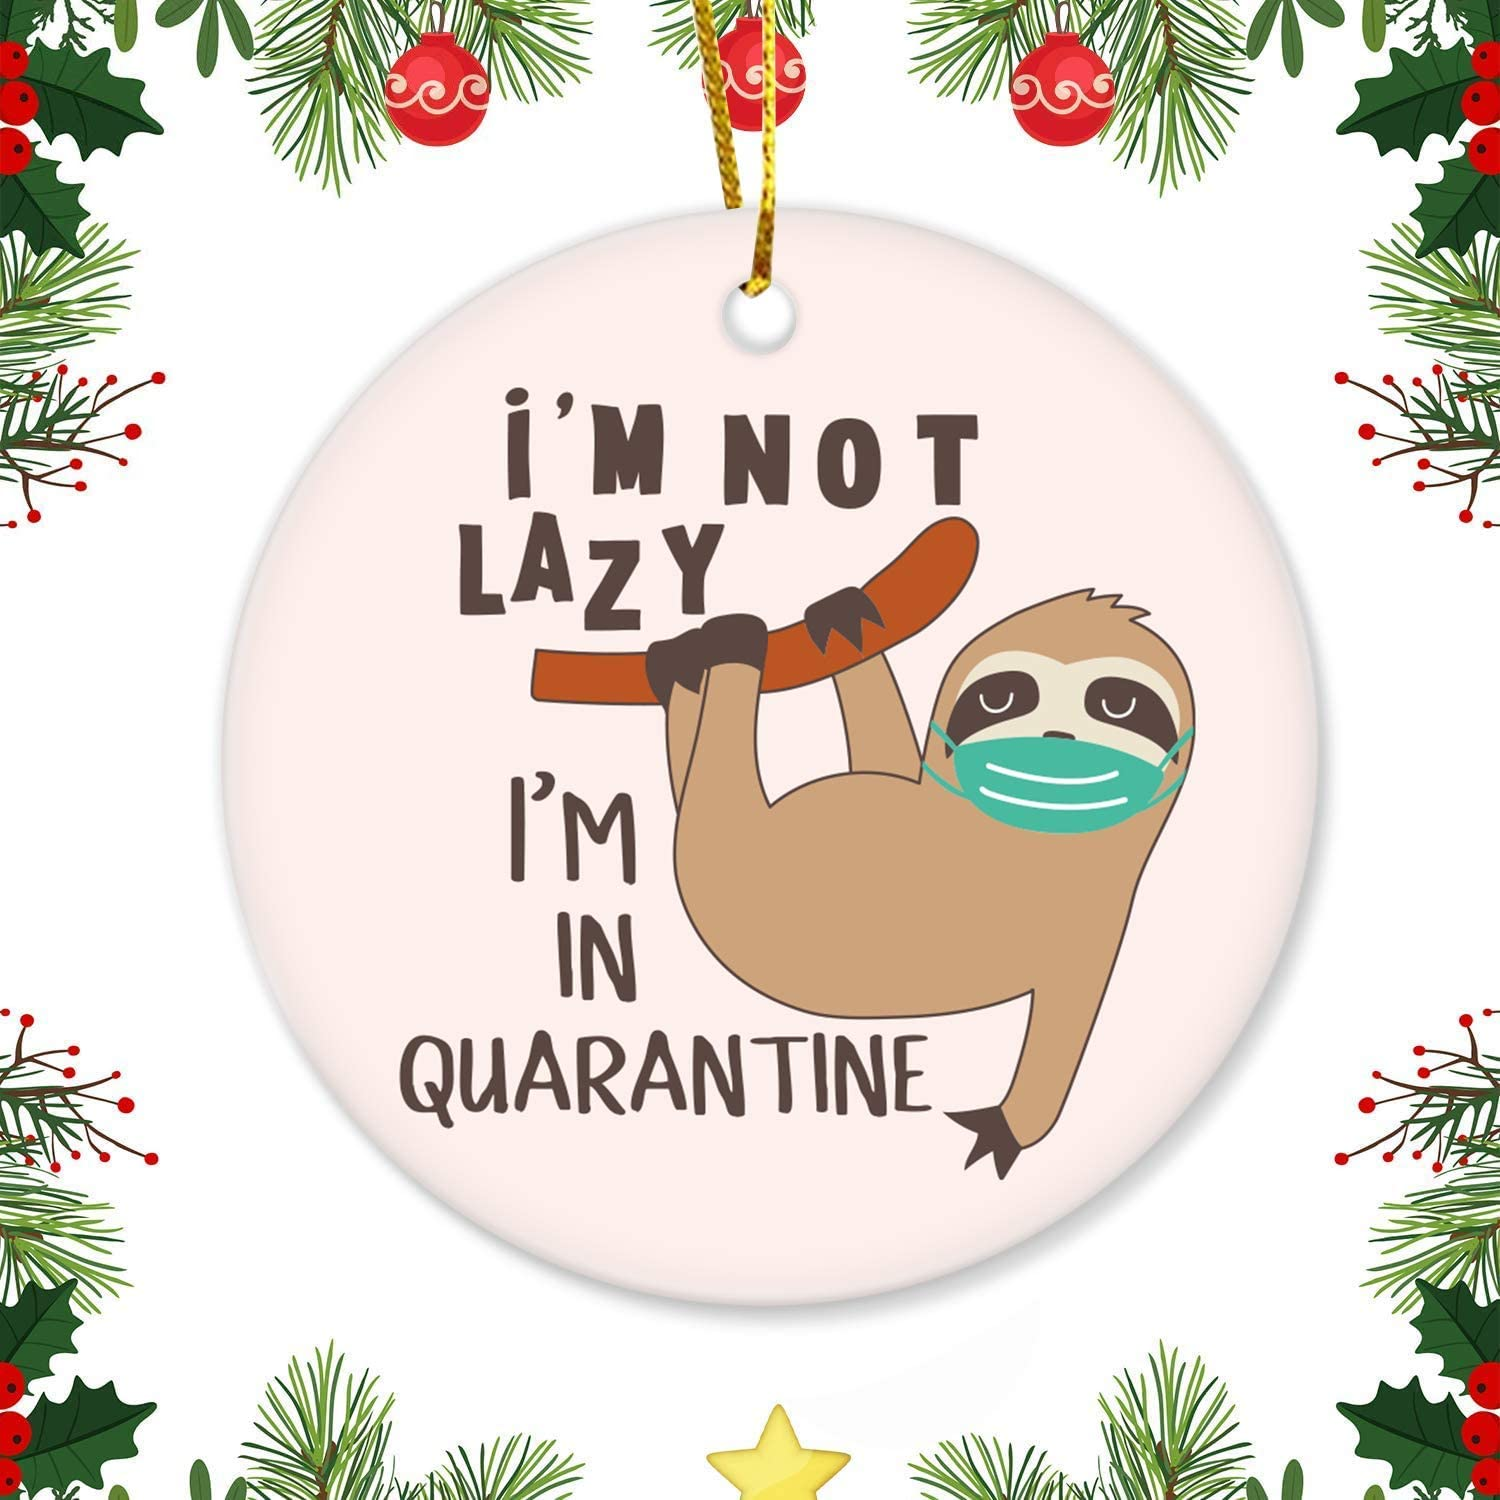 erolrail I'm not Lazy, I'm in Quarantine Sloth Merry Christmas Funny Round Christmas Ornament Double Sided Xmas Decor Christmas Tree Ornaments with Box Ornaments for Christmas 2020